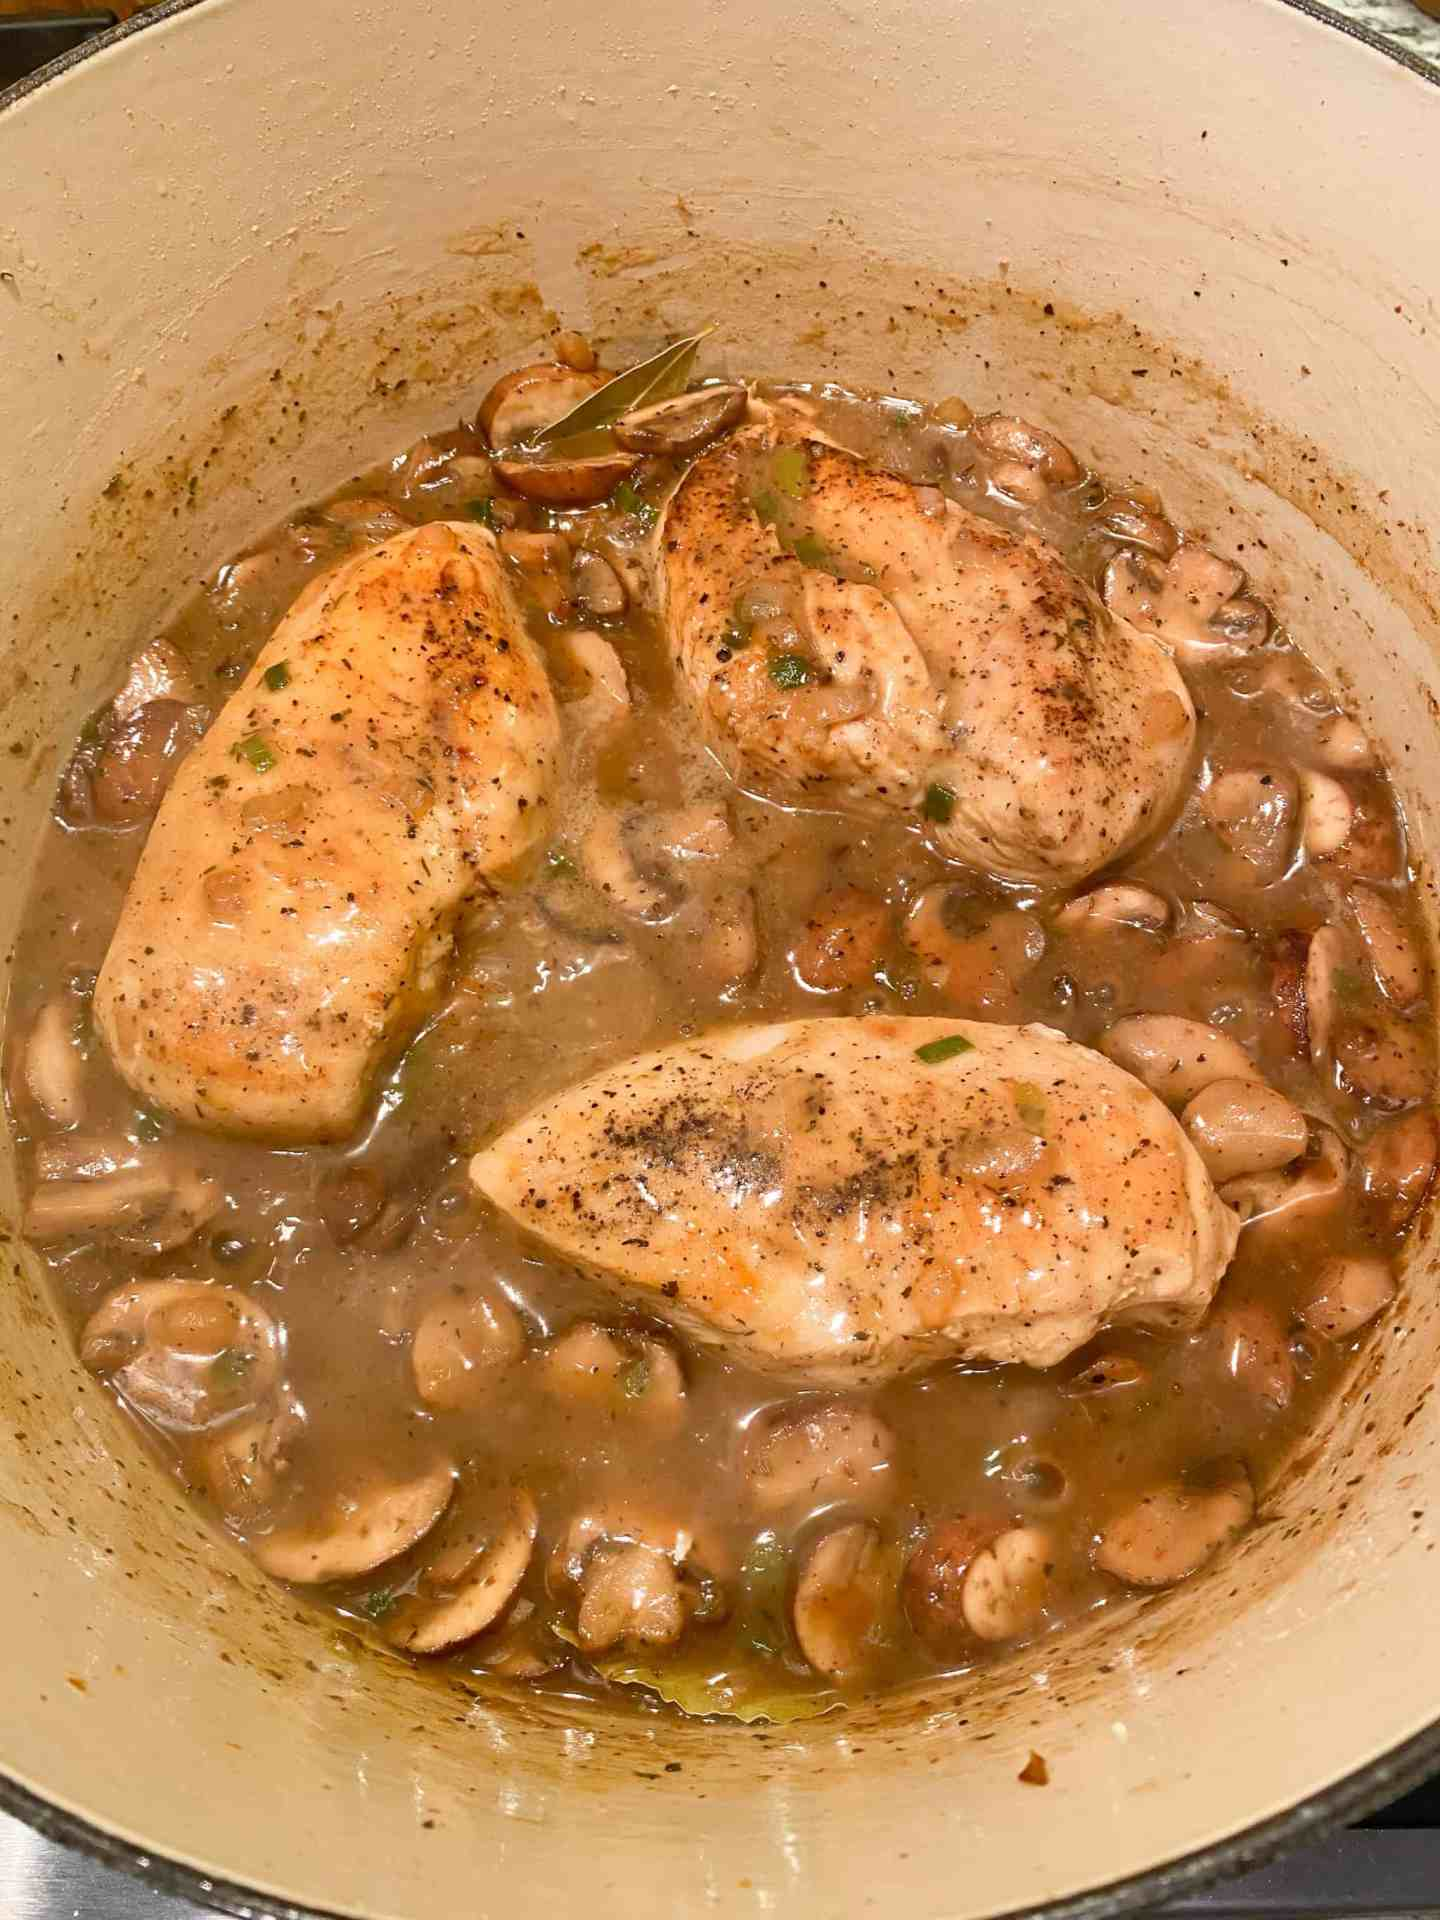 return-chicken-to-pot-and-simmer-until-cooked-through